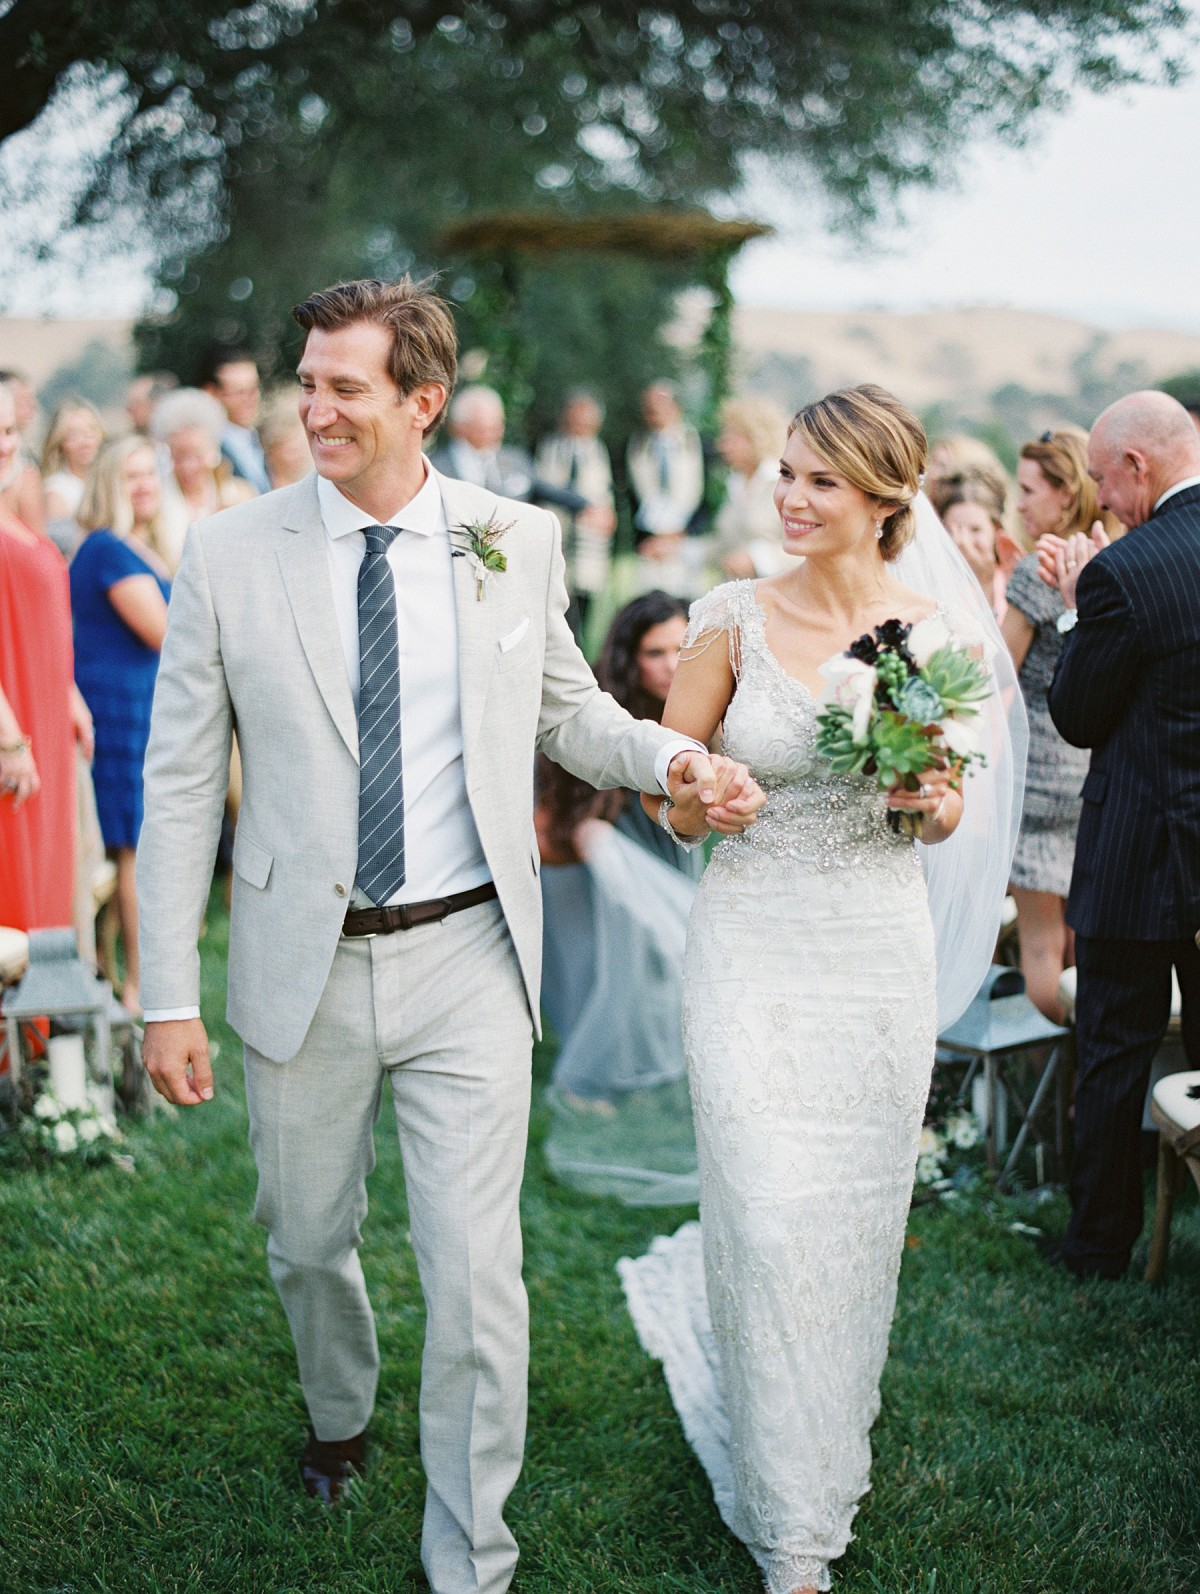 Sophisticated Outdoor Wedding at Firestone Vineyard